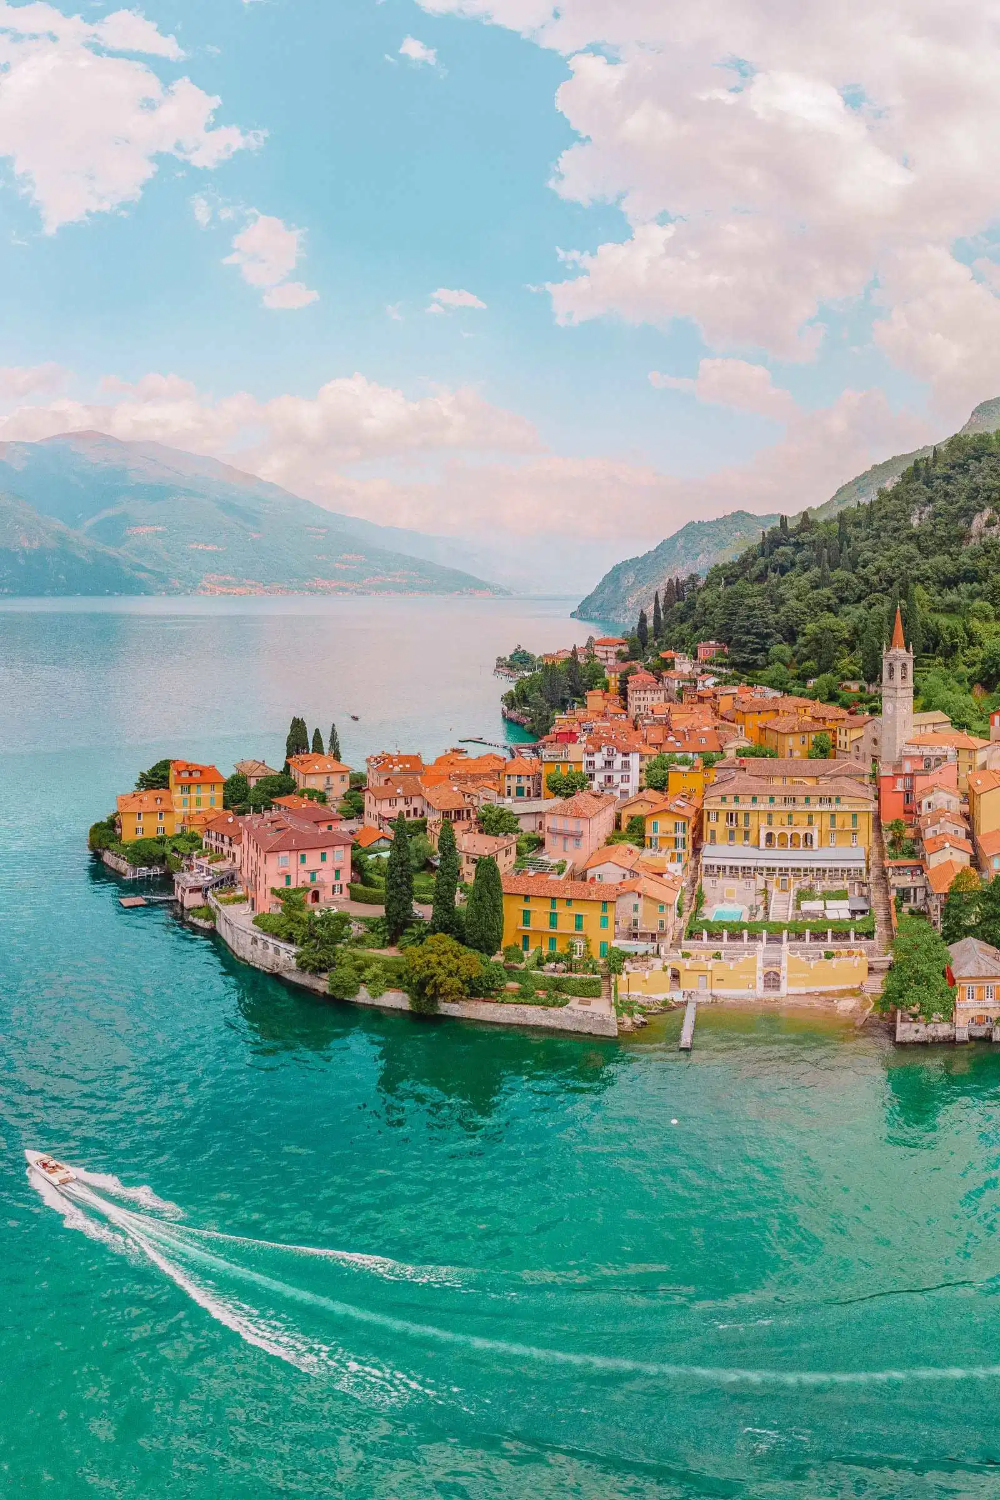 10 Best Things To Do In Lake Como, Italy